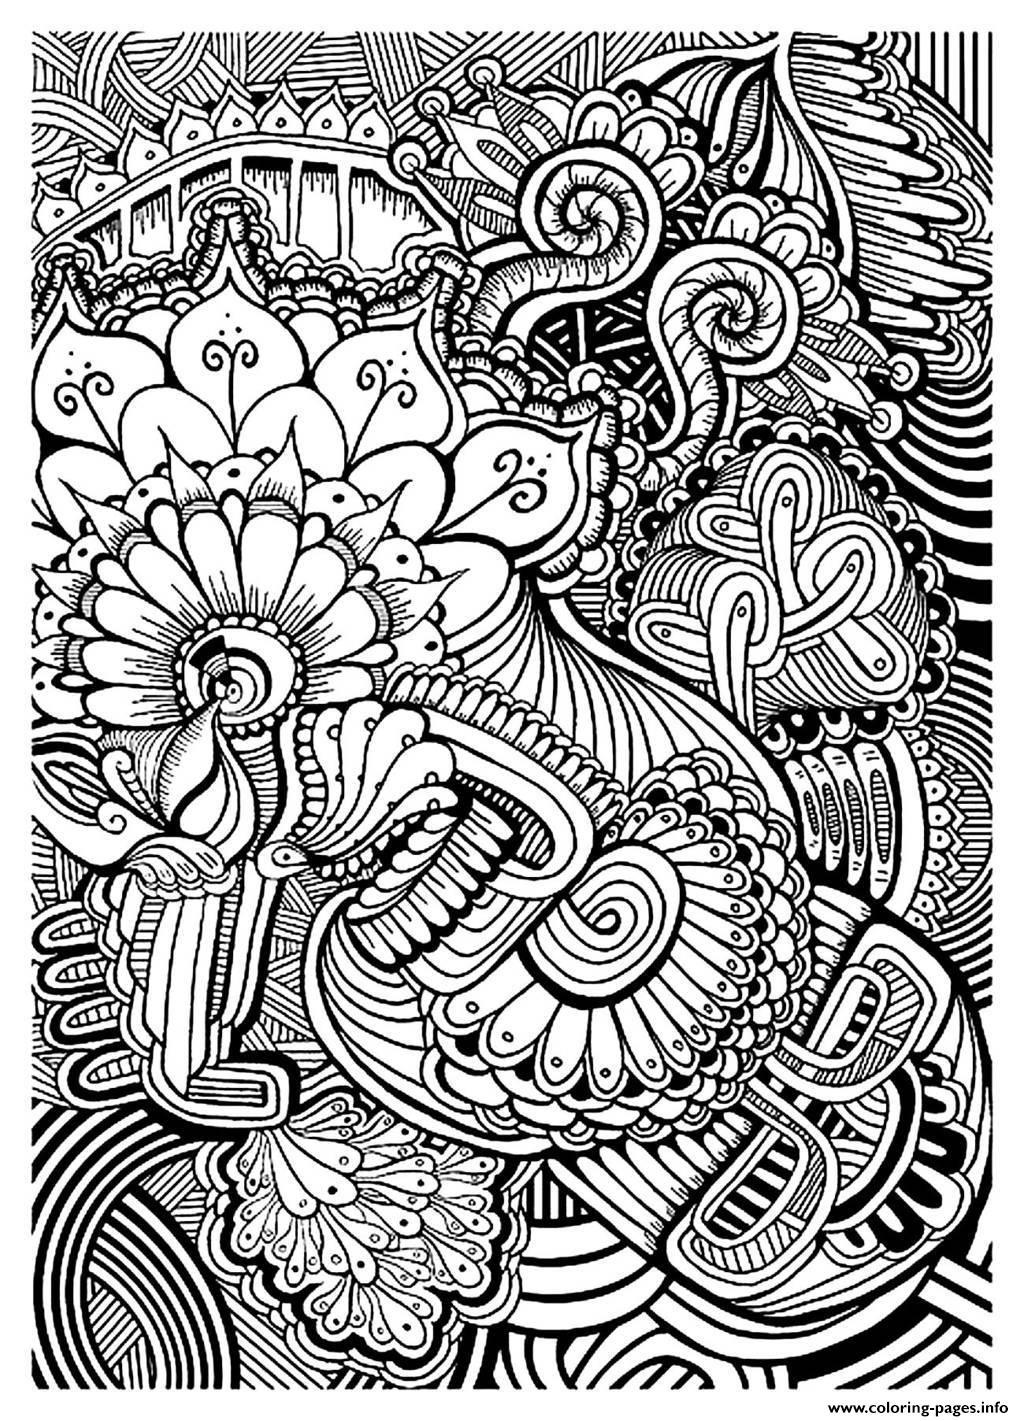 1024x1421 Marvelous Adult Zen Anti Stress Relax To Print Coloring Pages